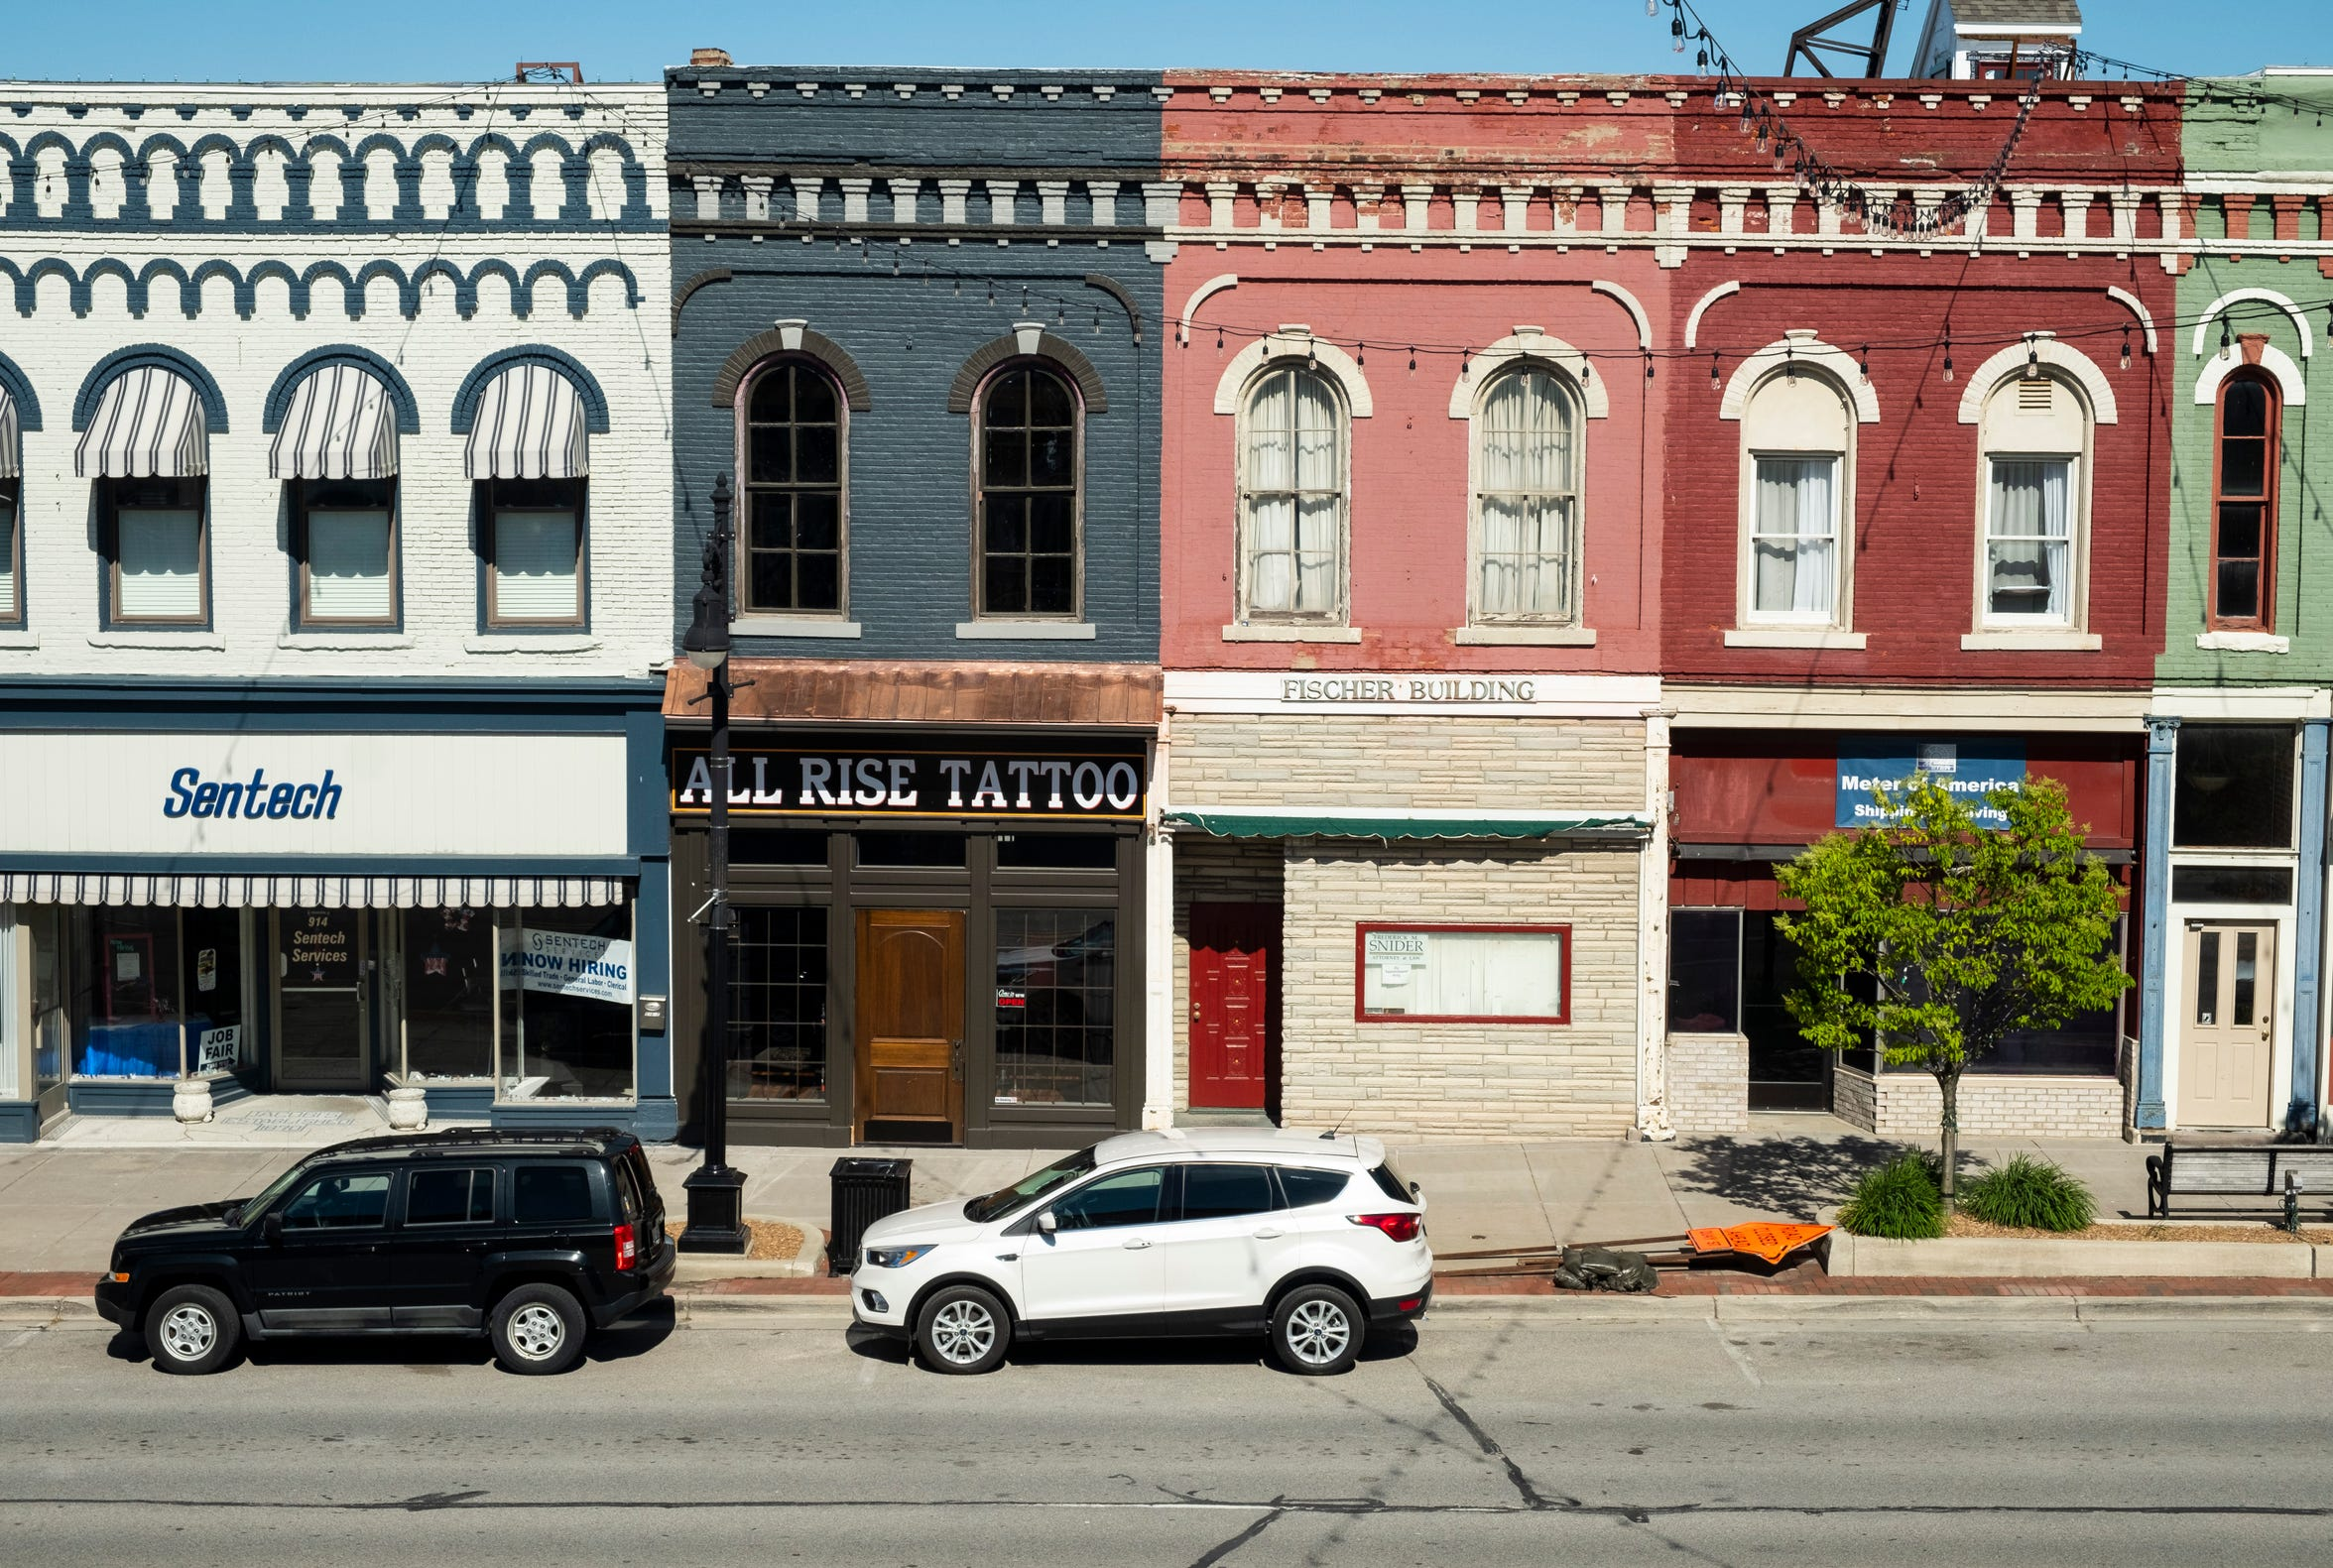 All Rise Tattoo has opened at 916 Military Street in downtown Port Huron.